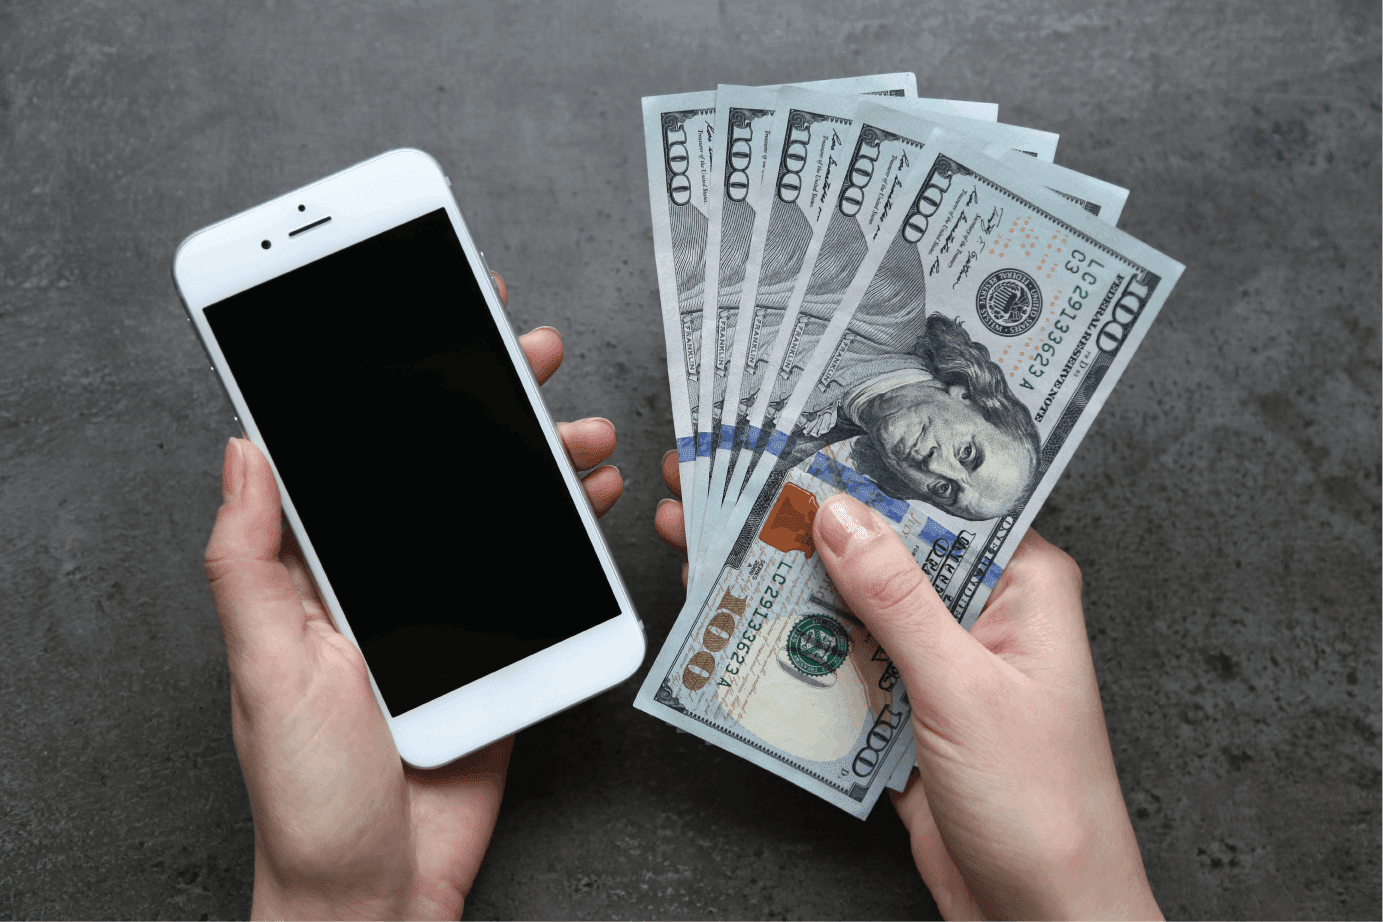 10 Best Smartphone Apps That Pay You Money 2018